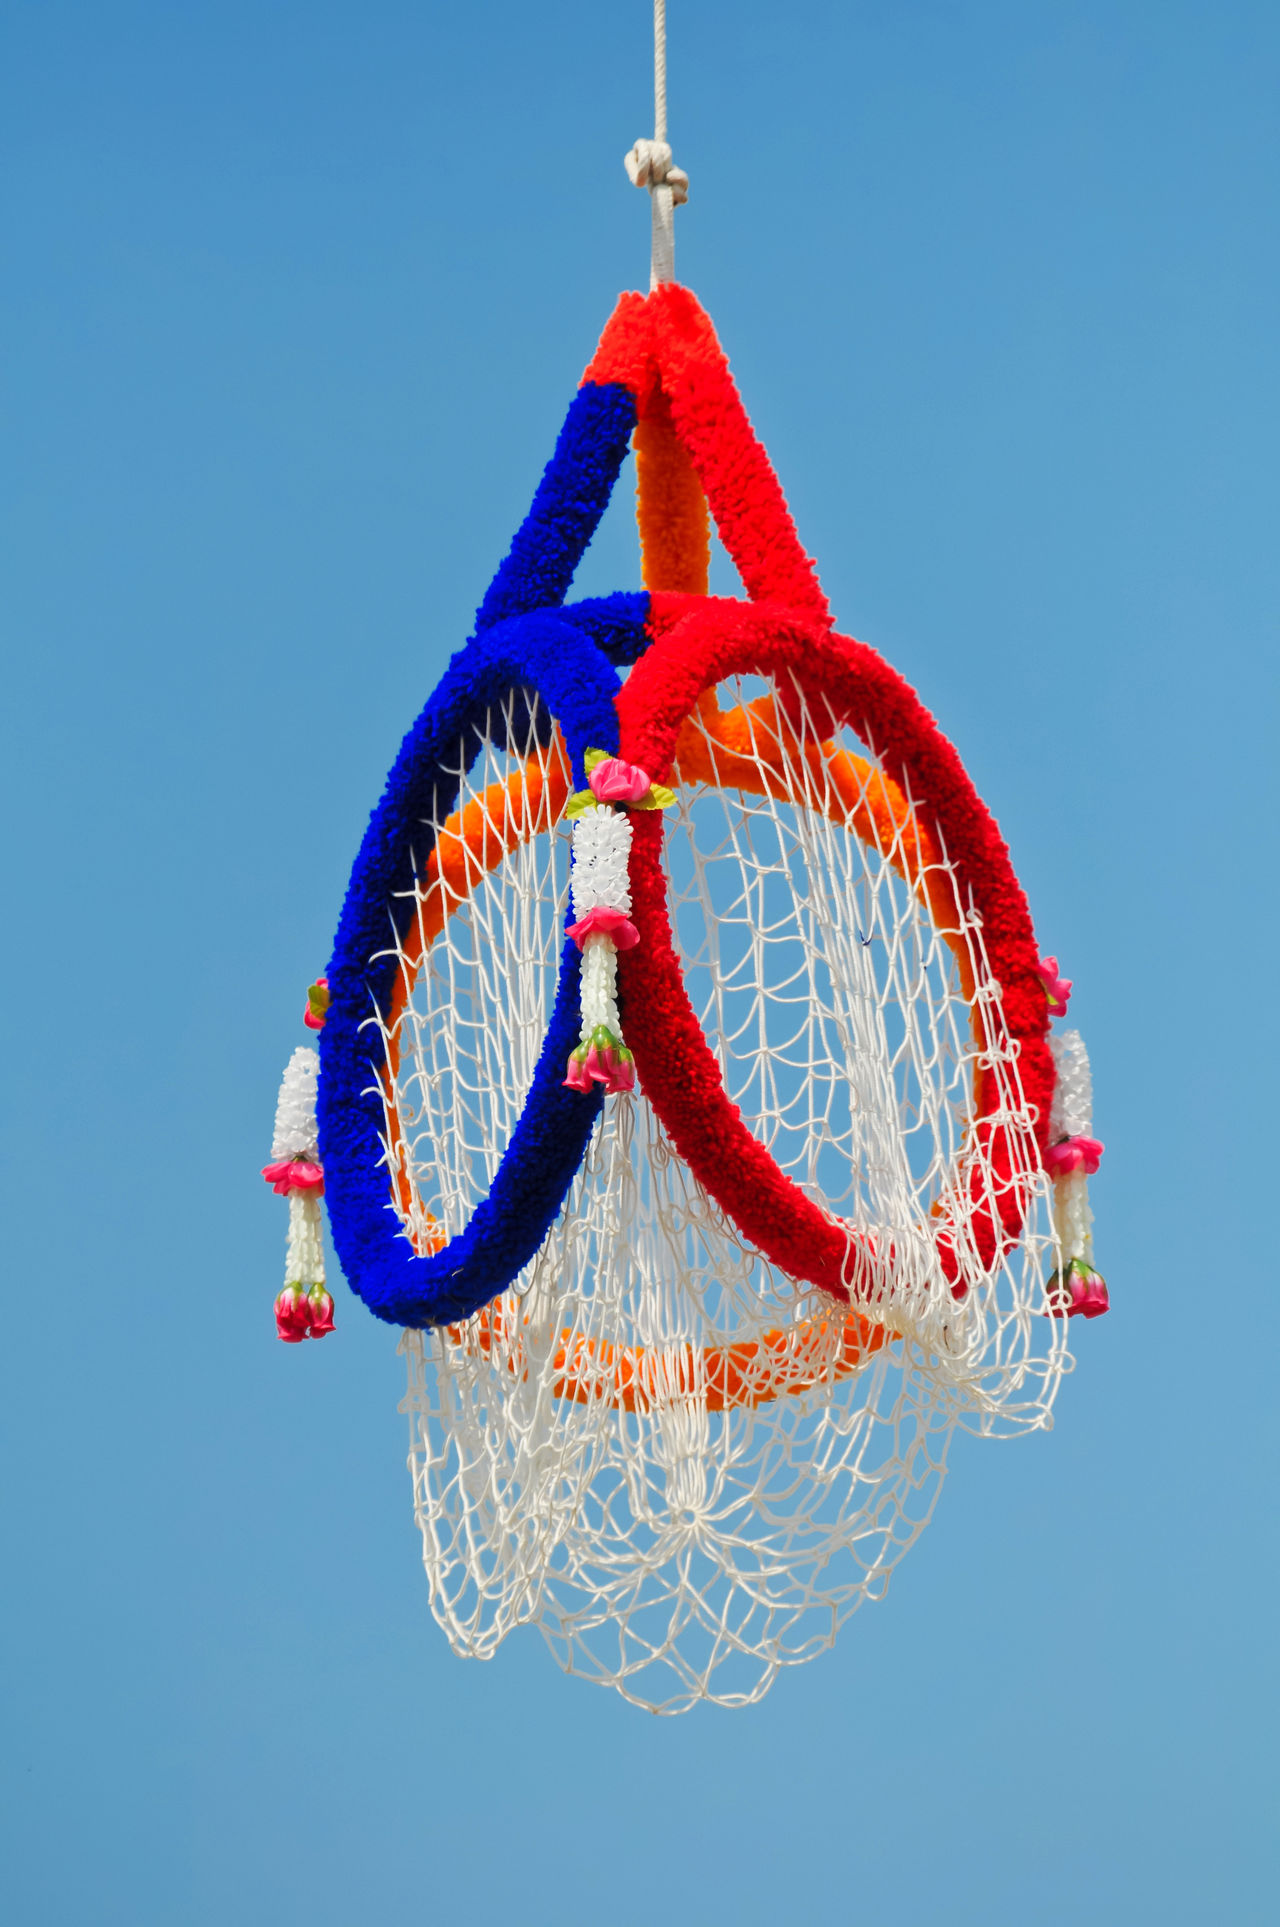 Thai sports known as Takraw through hoops Above Asian Culture Blue Sky Day Game High Kick Leisure Activity Loop Net No People Outdoors Red Color Skill  Sky Sling Southeast Asia Sphere Striped Takraw Thailand..